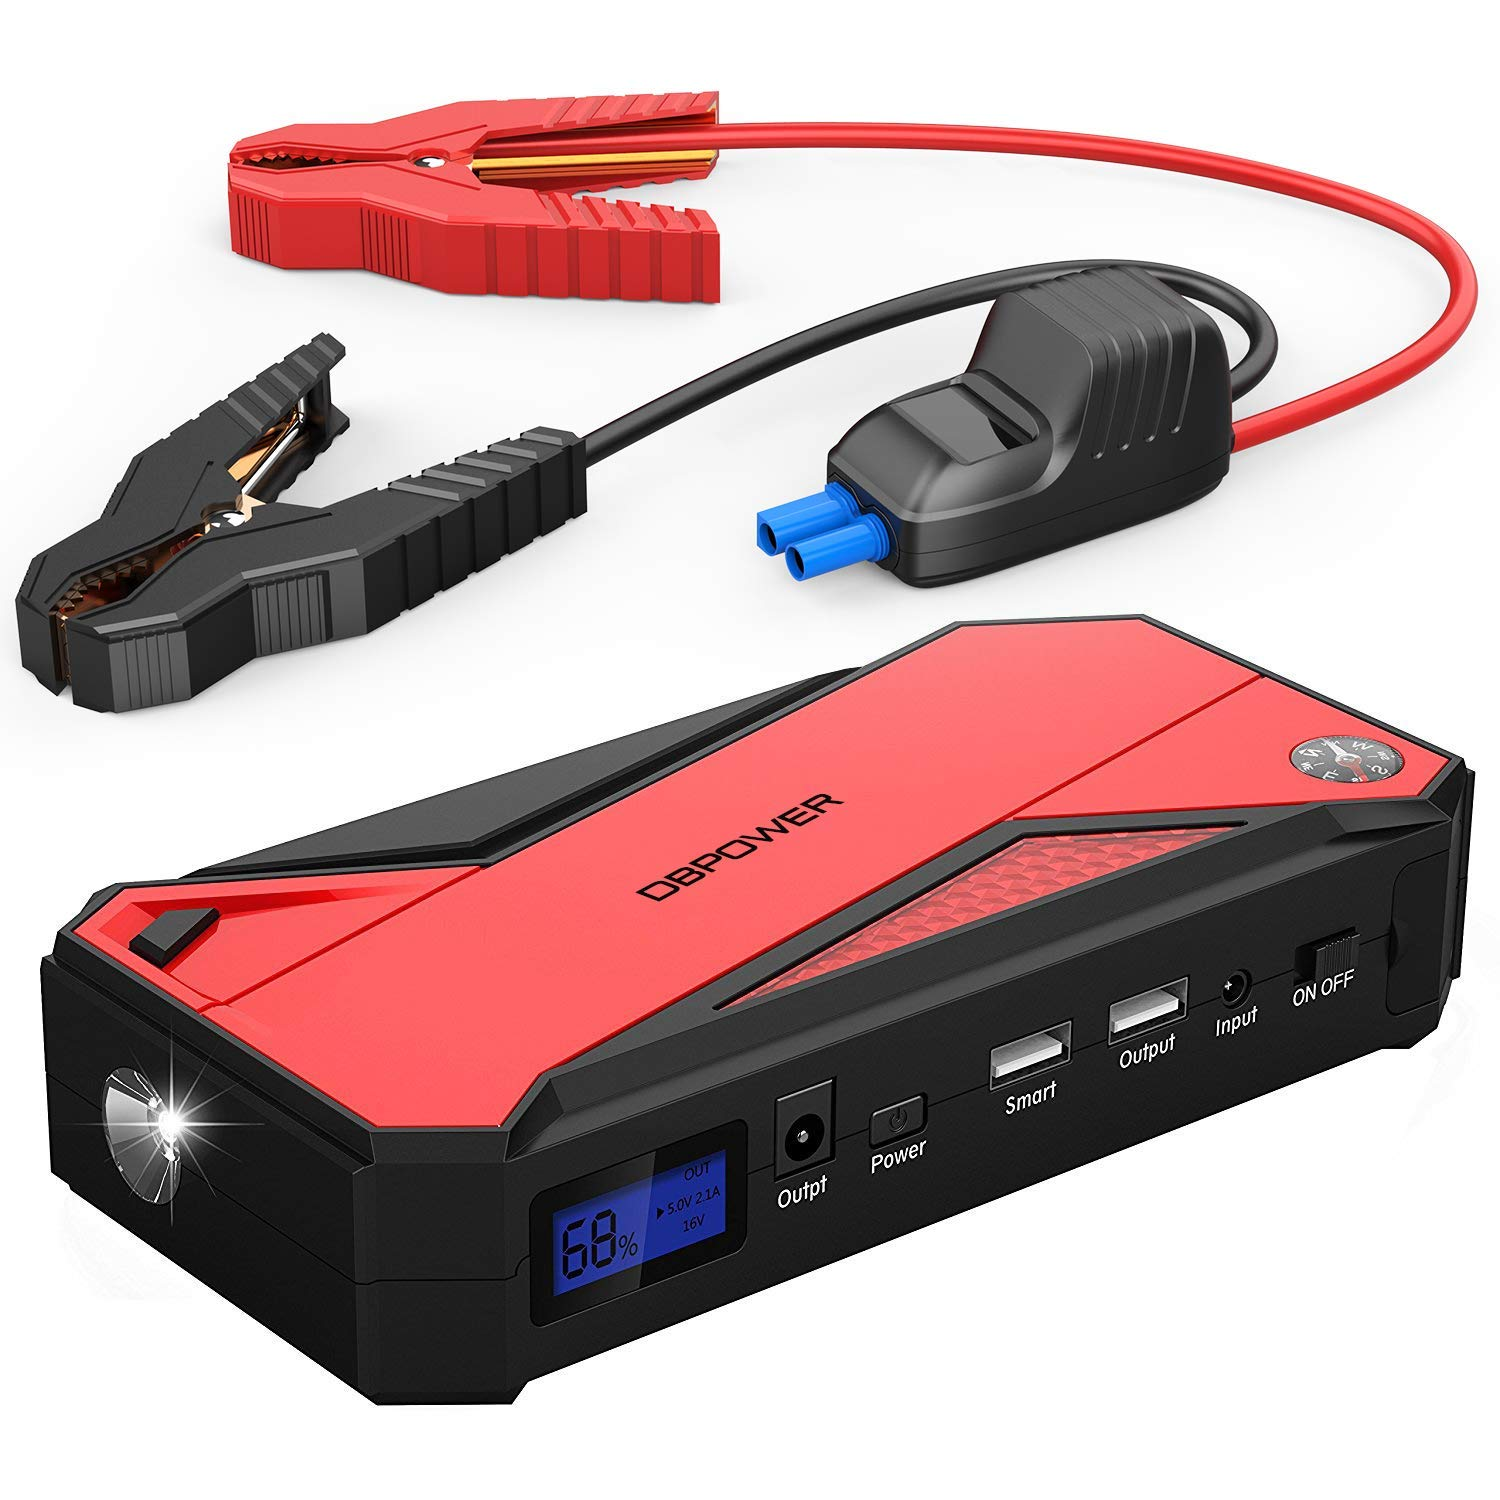 DBPOWER 600A Peak Portable Jump Starter